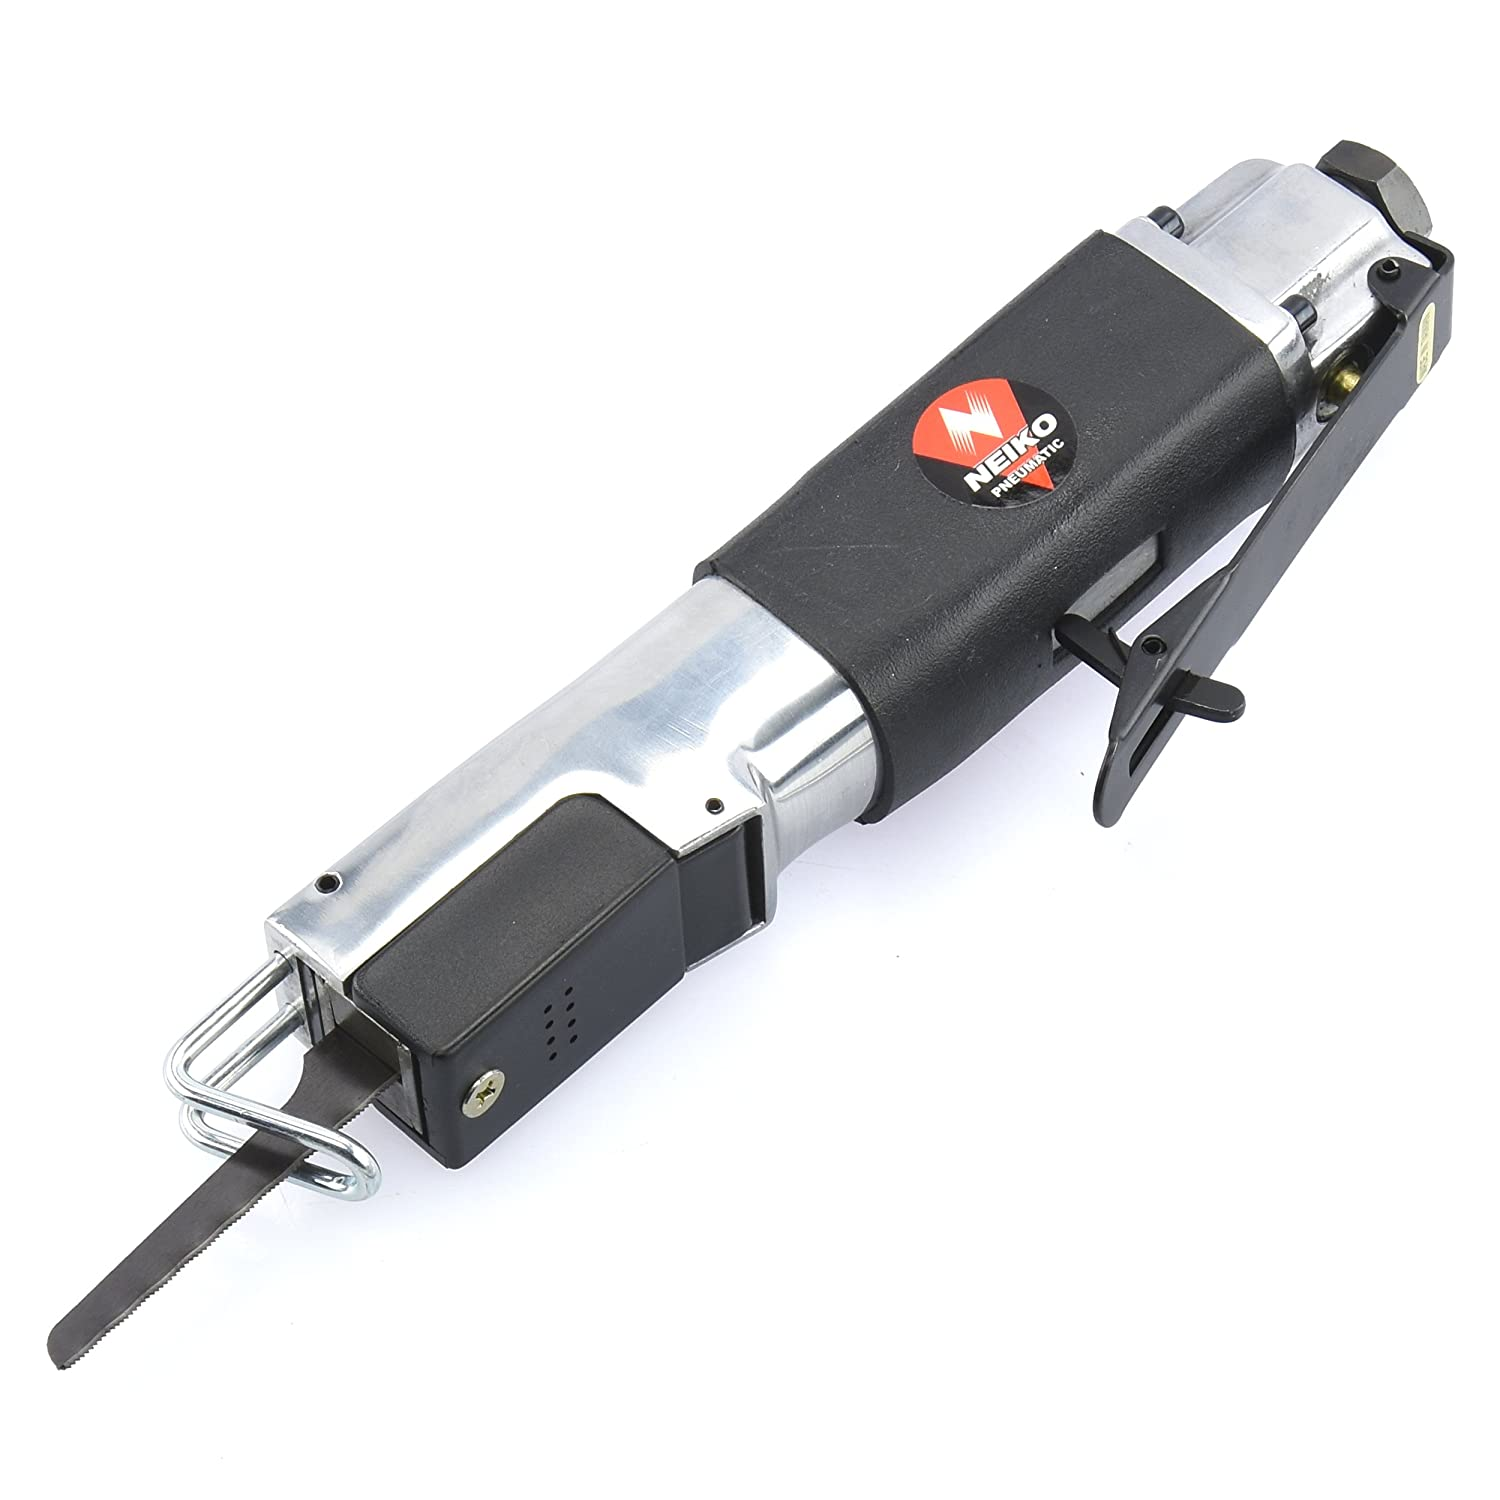 metal cutter tool. product details metal cutter tool l